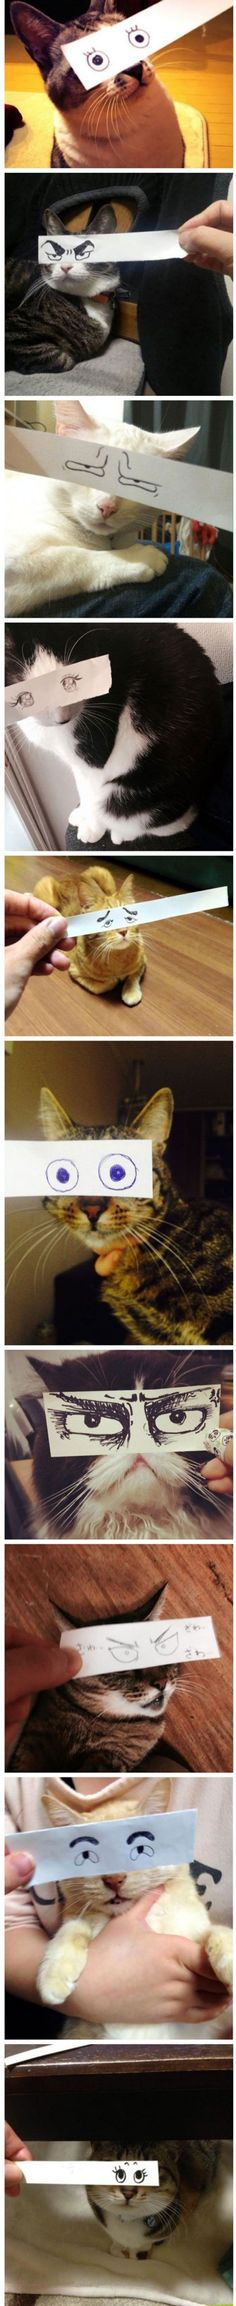 12 Funny Pictures Of Cats With Paper Eyes ( ) Funny Animal Pictures, Funny Animals, Cute Animals, Funniest Animals, Crazy Cat Lady, Crazy Cats, Weird Cats, I Love Cats, Cute Cats